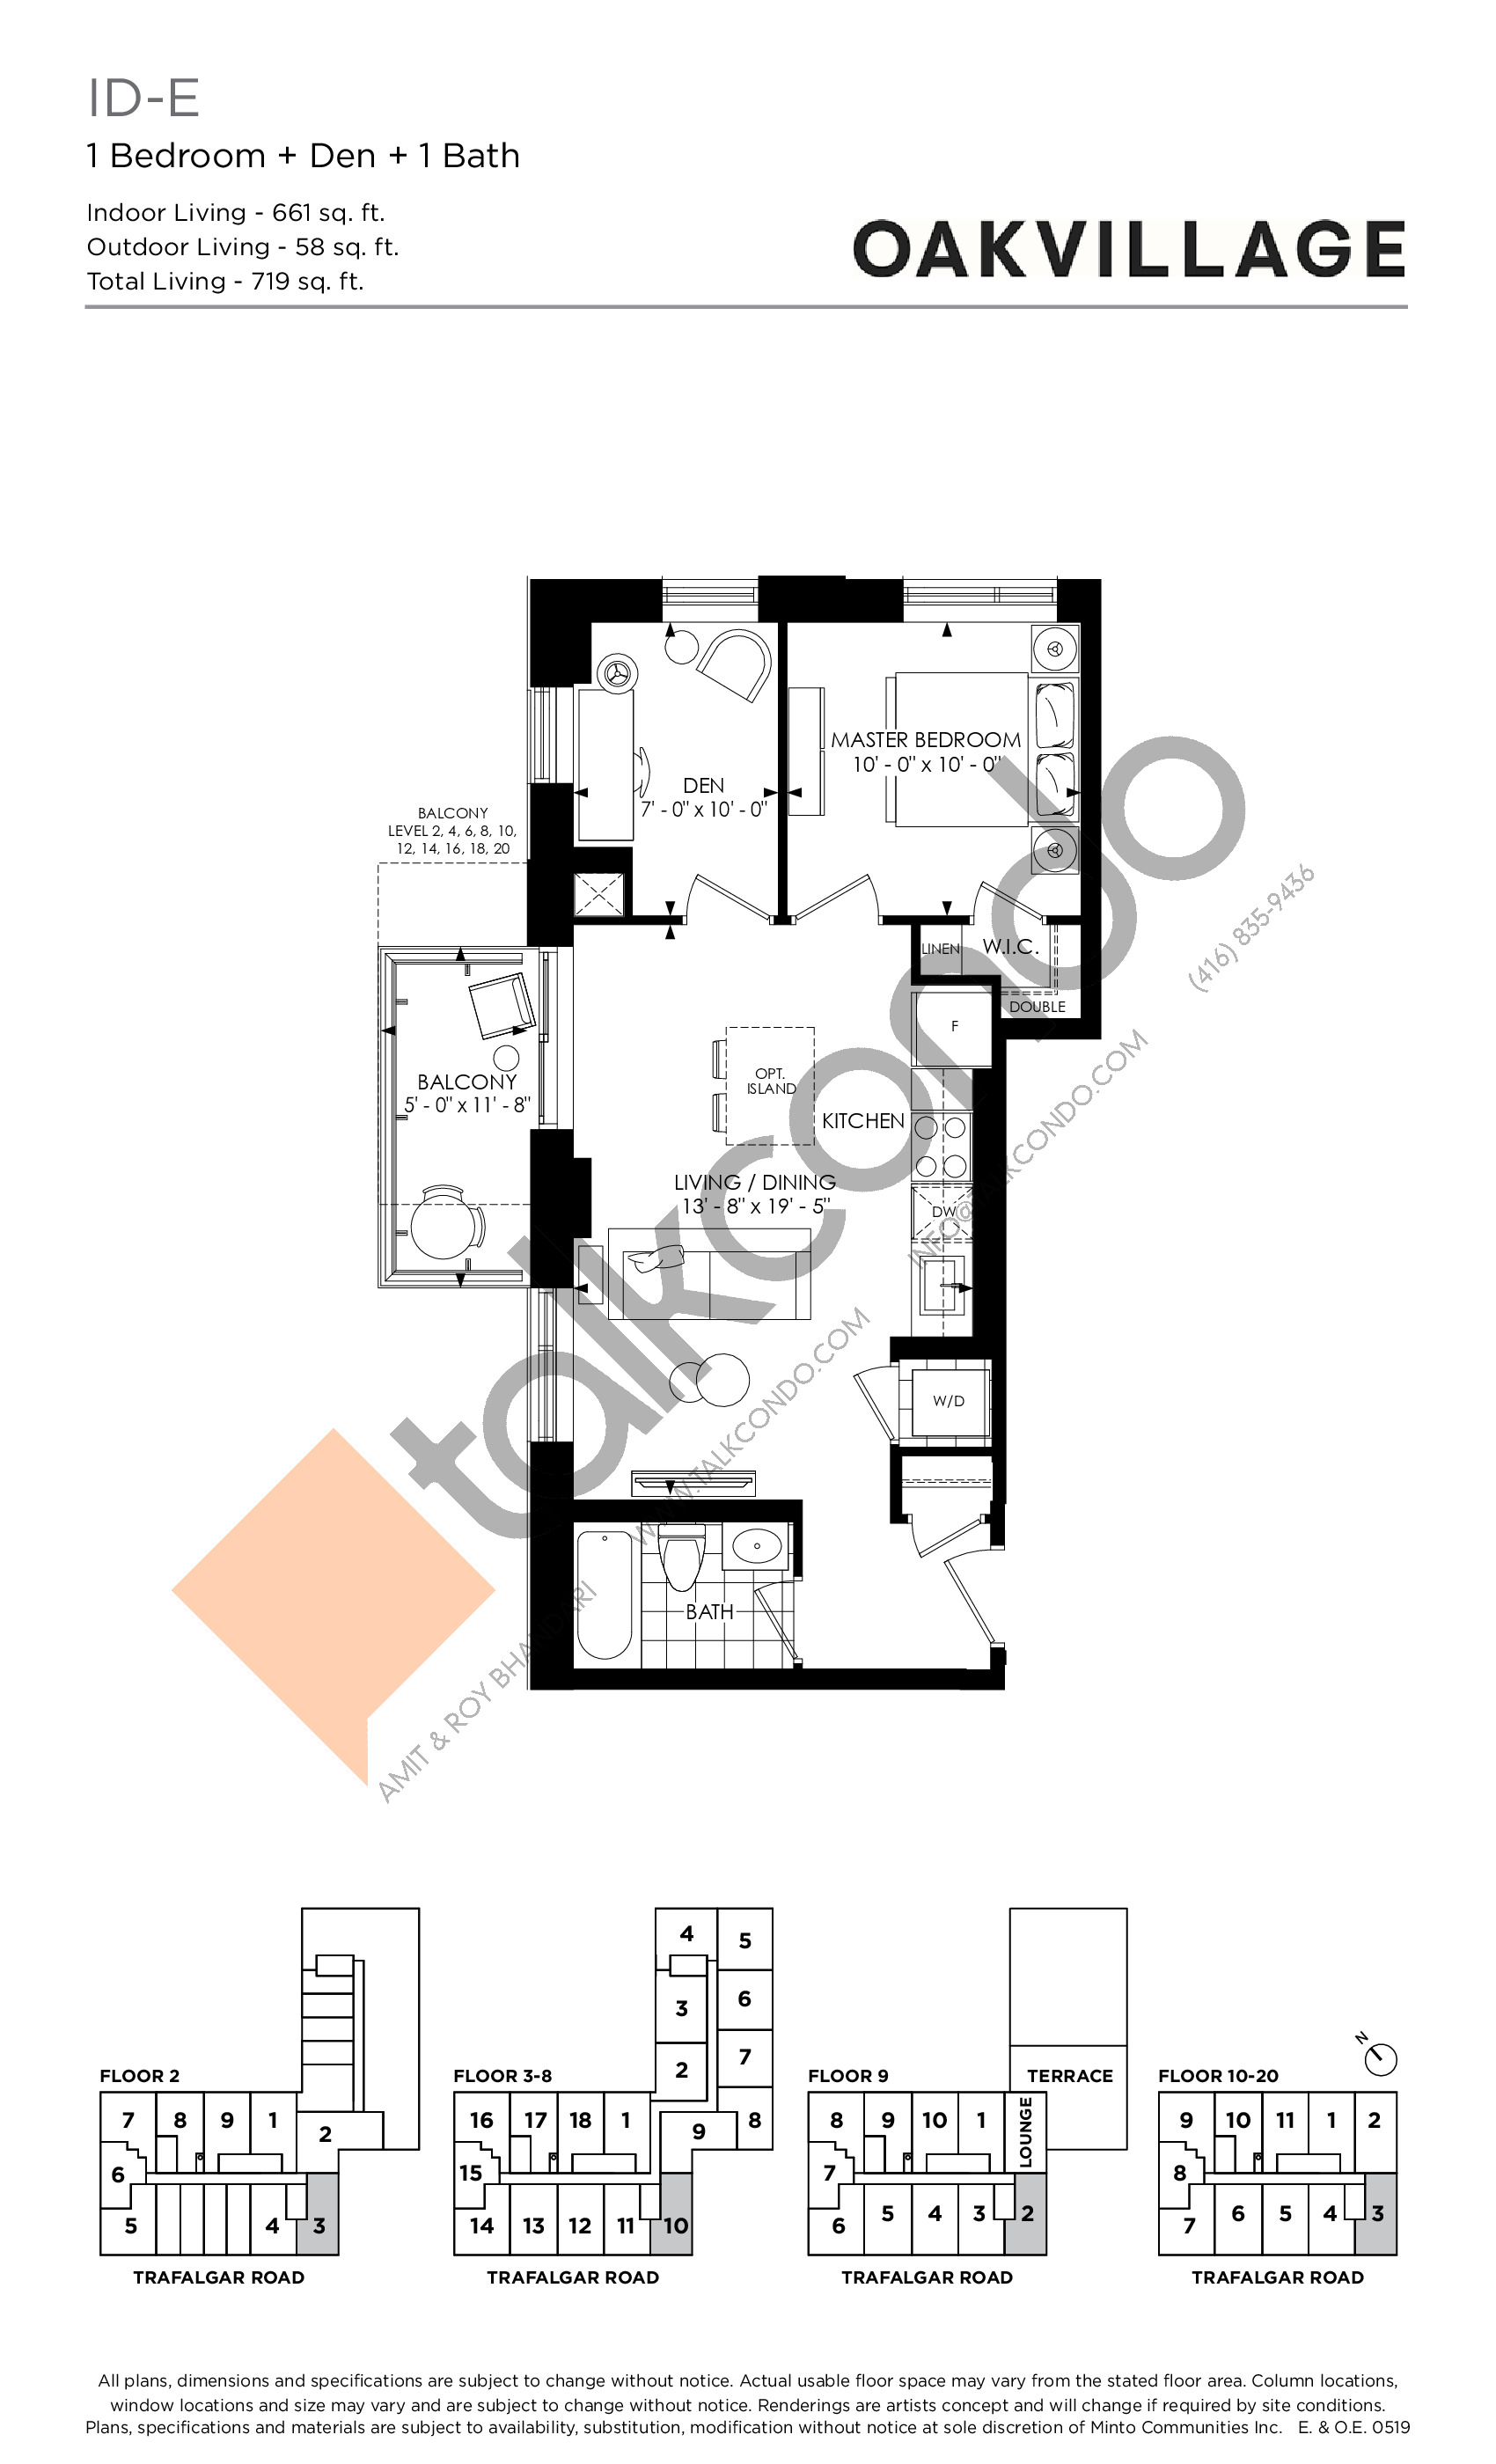 1D-E (Tower) Floor Plan at Oakvillage Phase 2 - 661 sq.ft